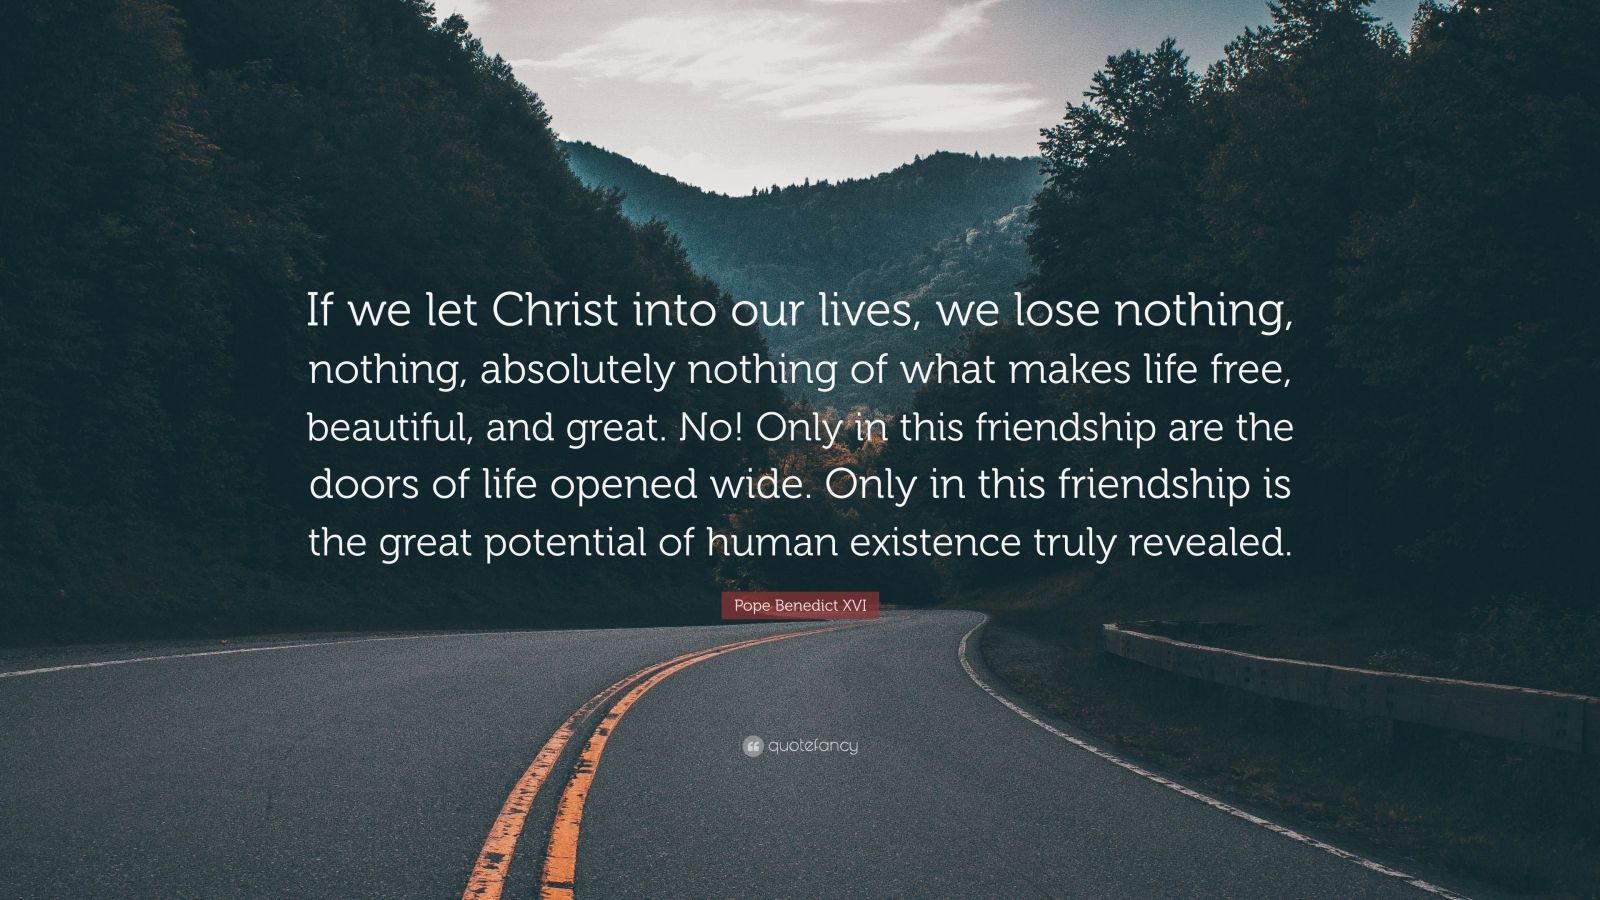 "Pope Benedict XVI Quote: ""If we let Christ into our lives, we lose nothing, nothing, absolutely nothing of what makes life free, beautiful, and great. No! Only in this friendship are the doors of life opened wide. Only in this friendship is the great potential of human existence truly revealed."""